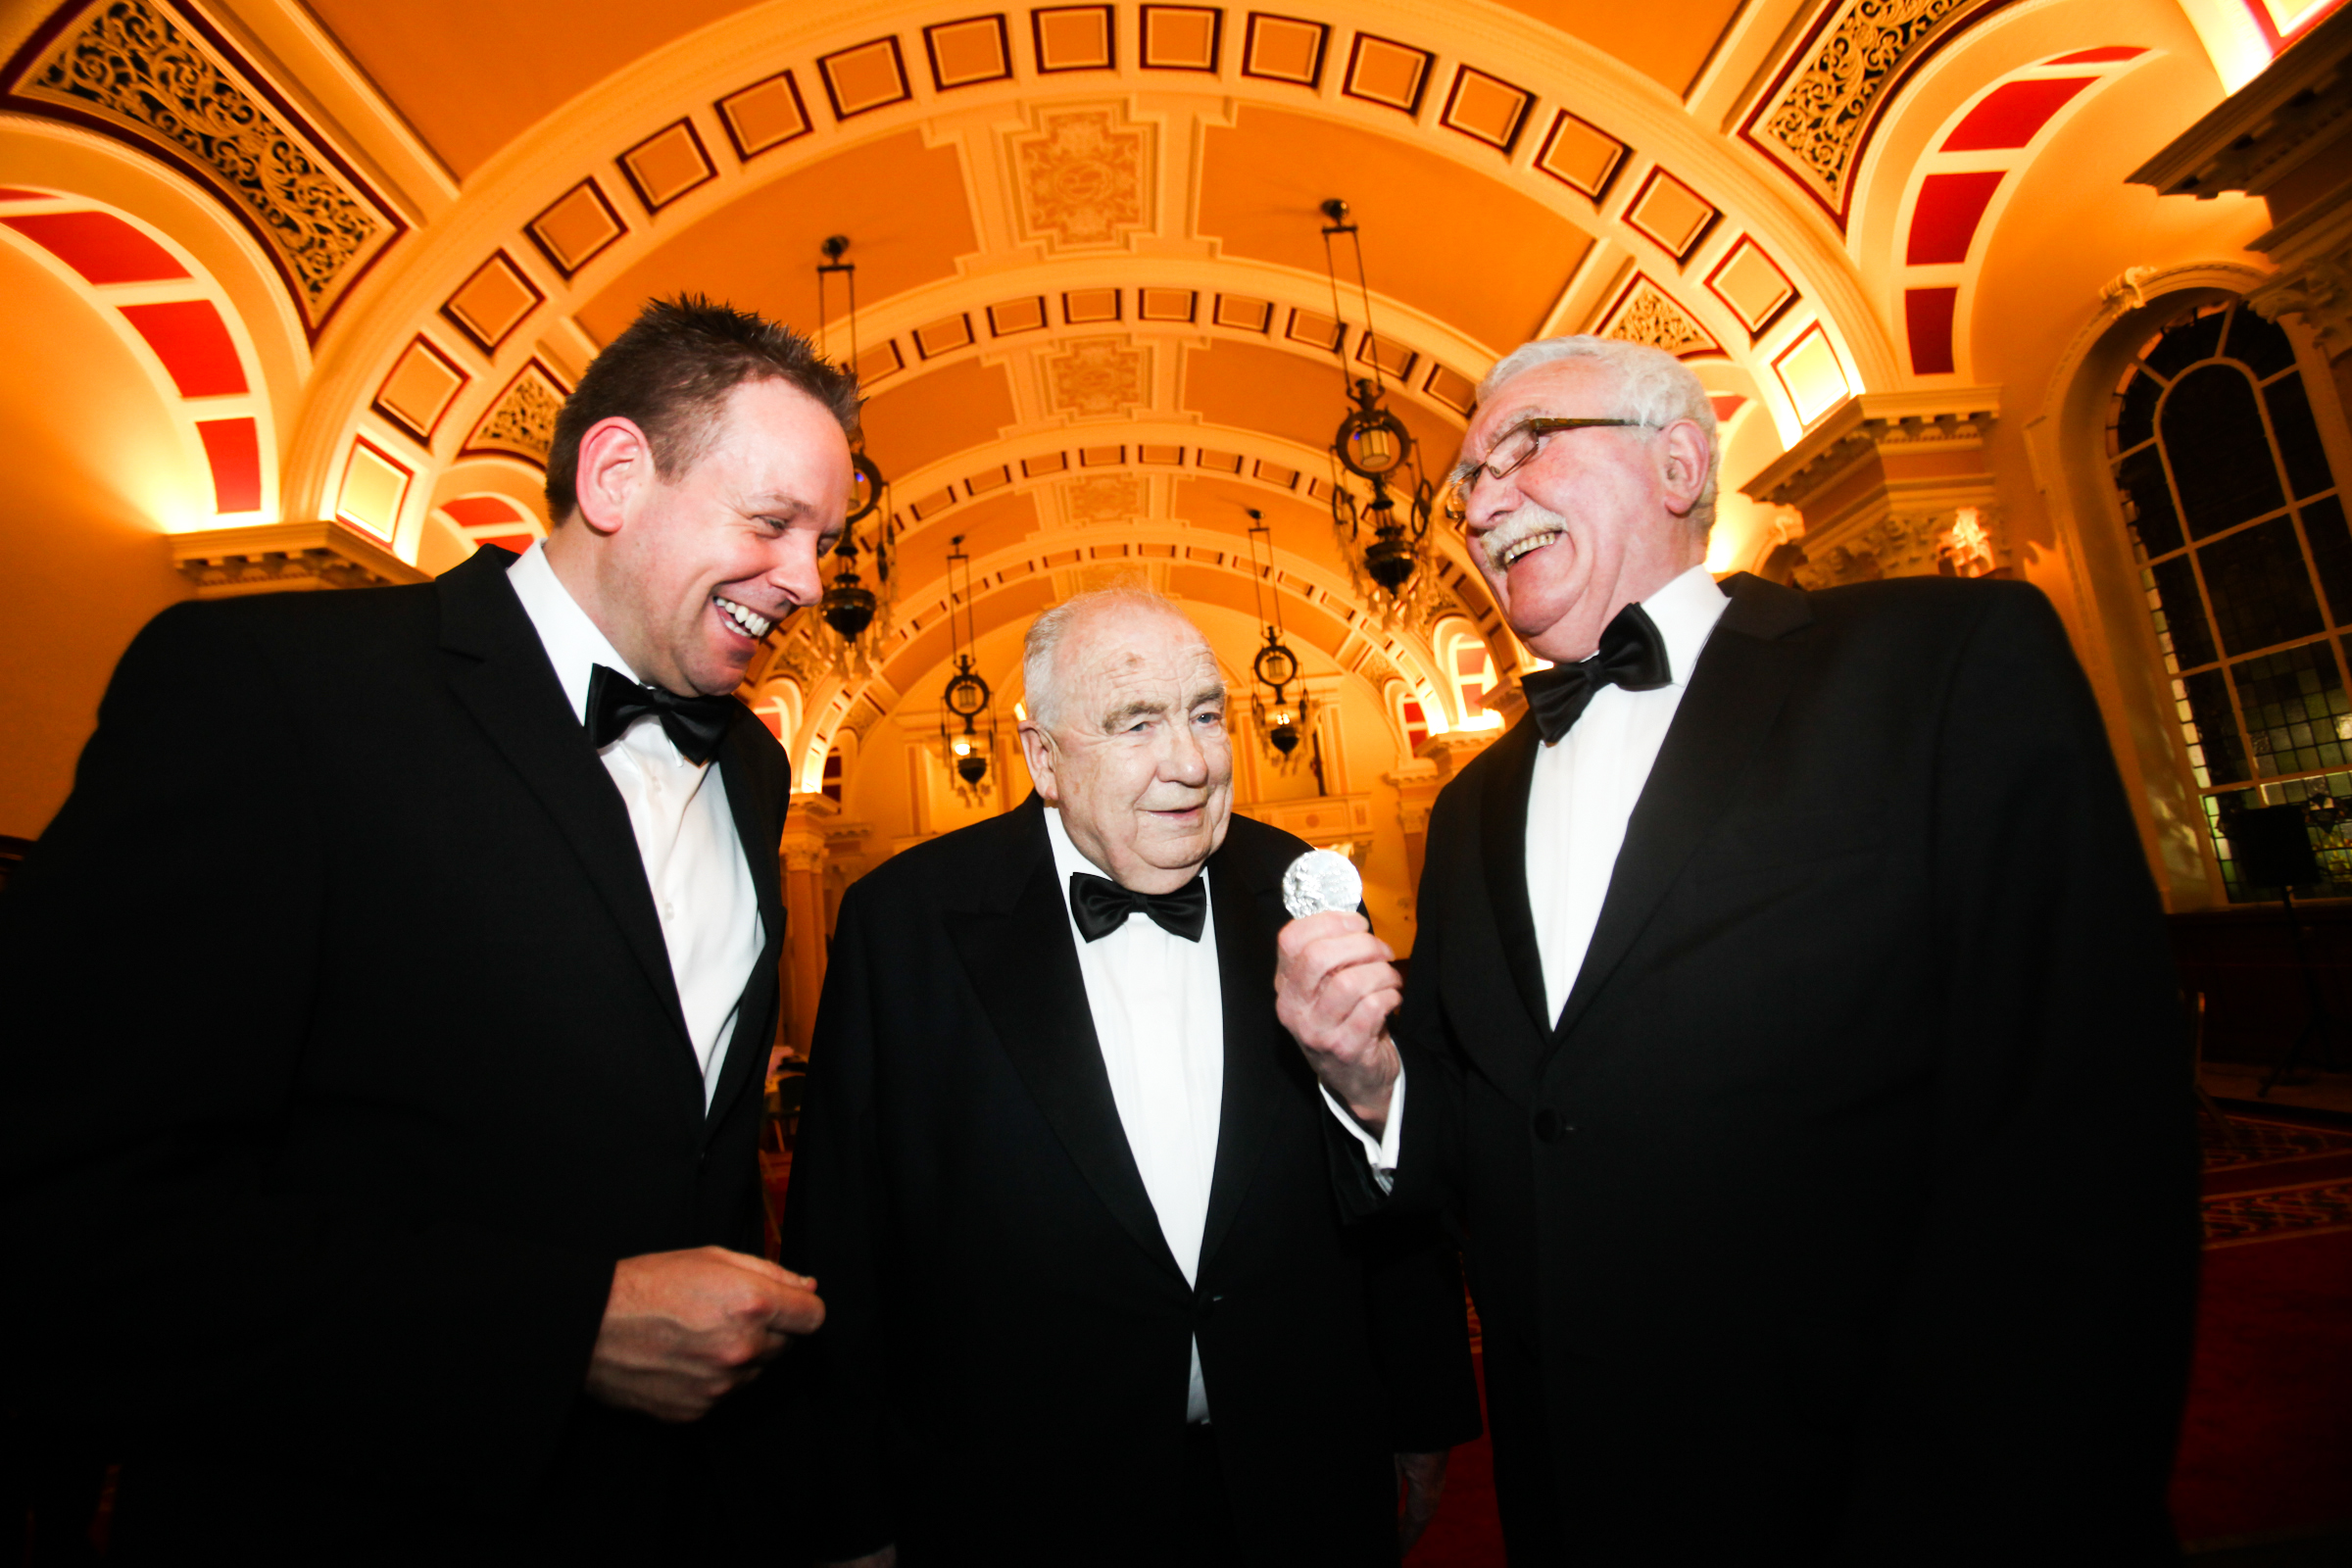 Northern Ireland's 'Mr Football' inducted into Belfast Sports Awards Hall of Fame